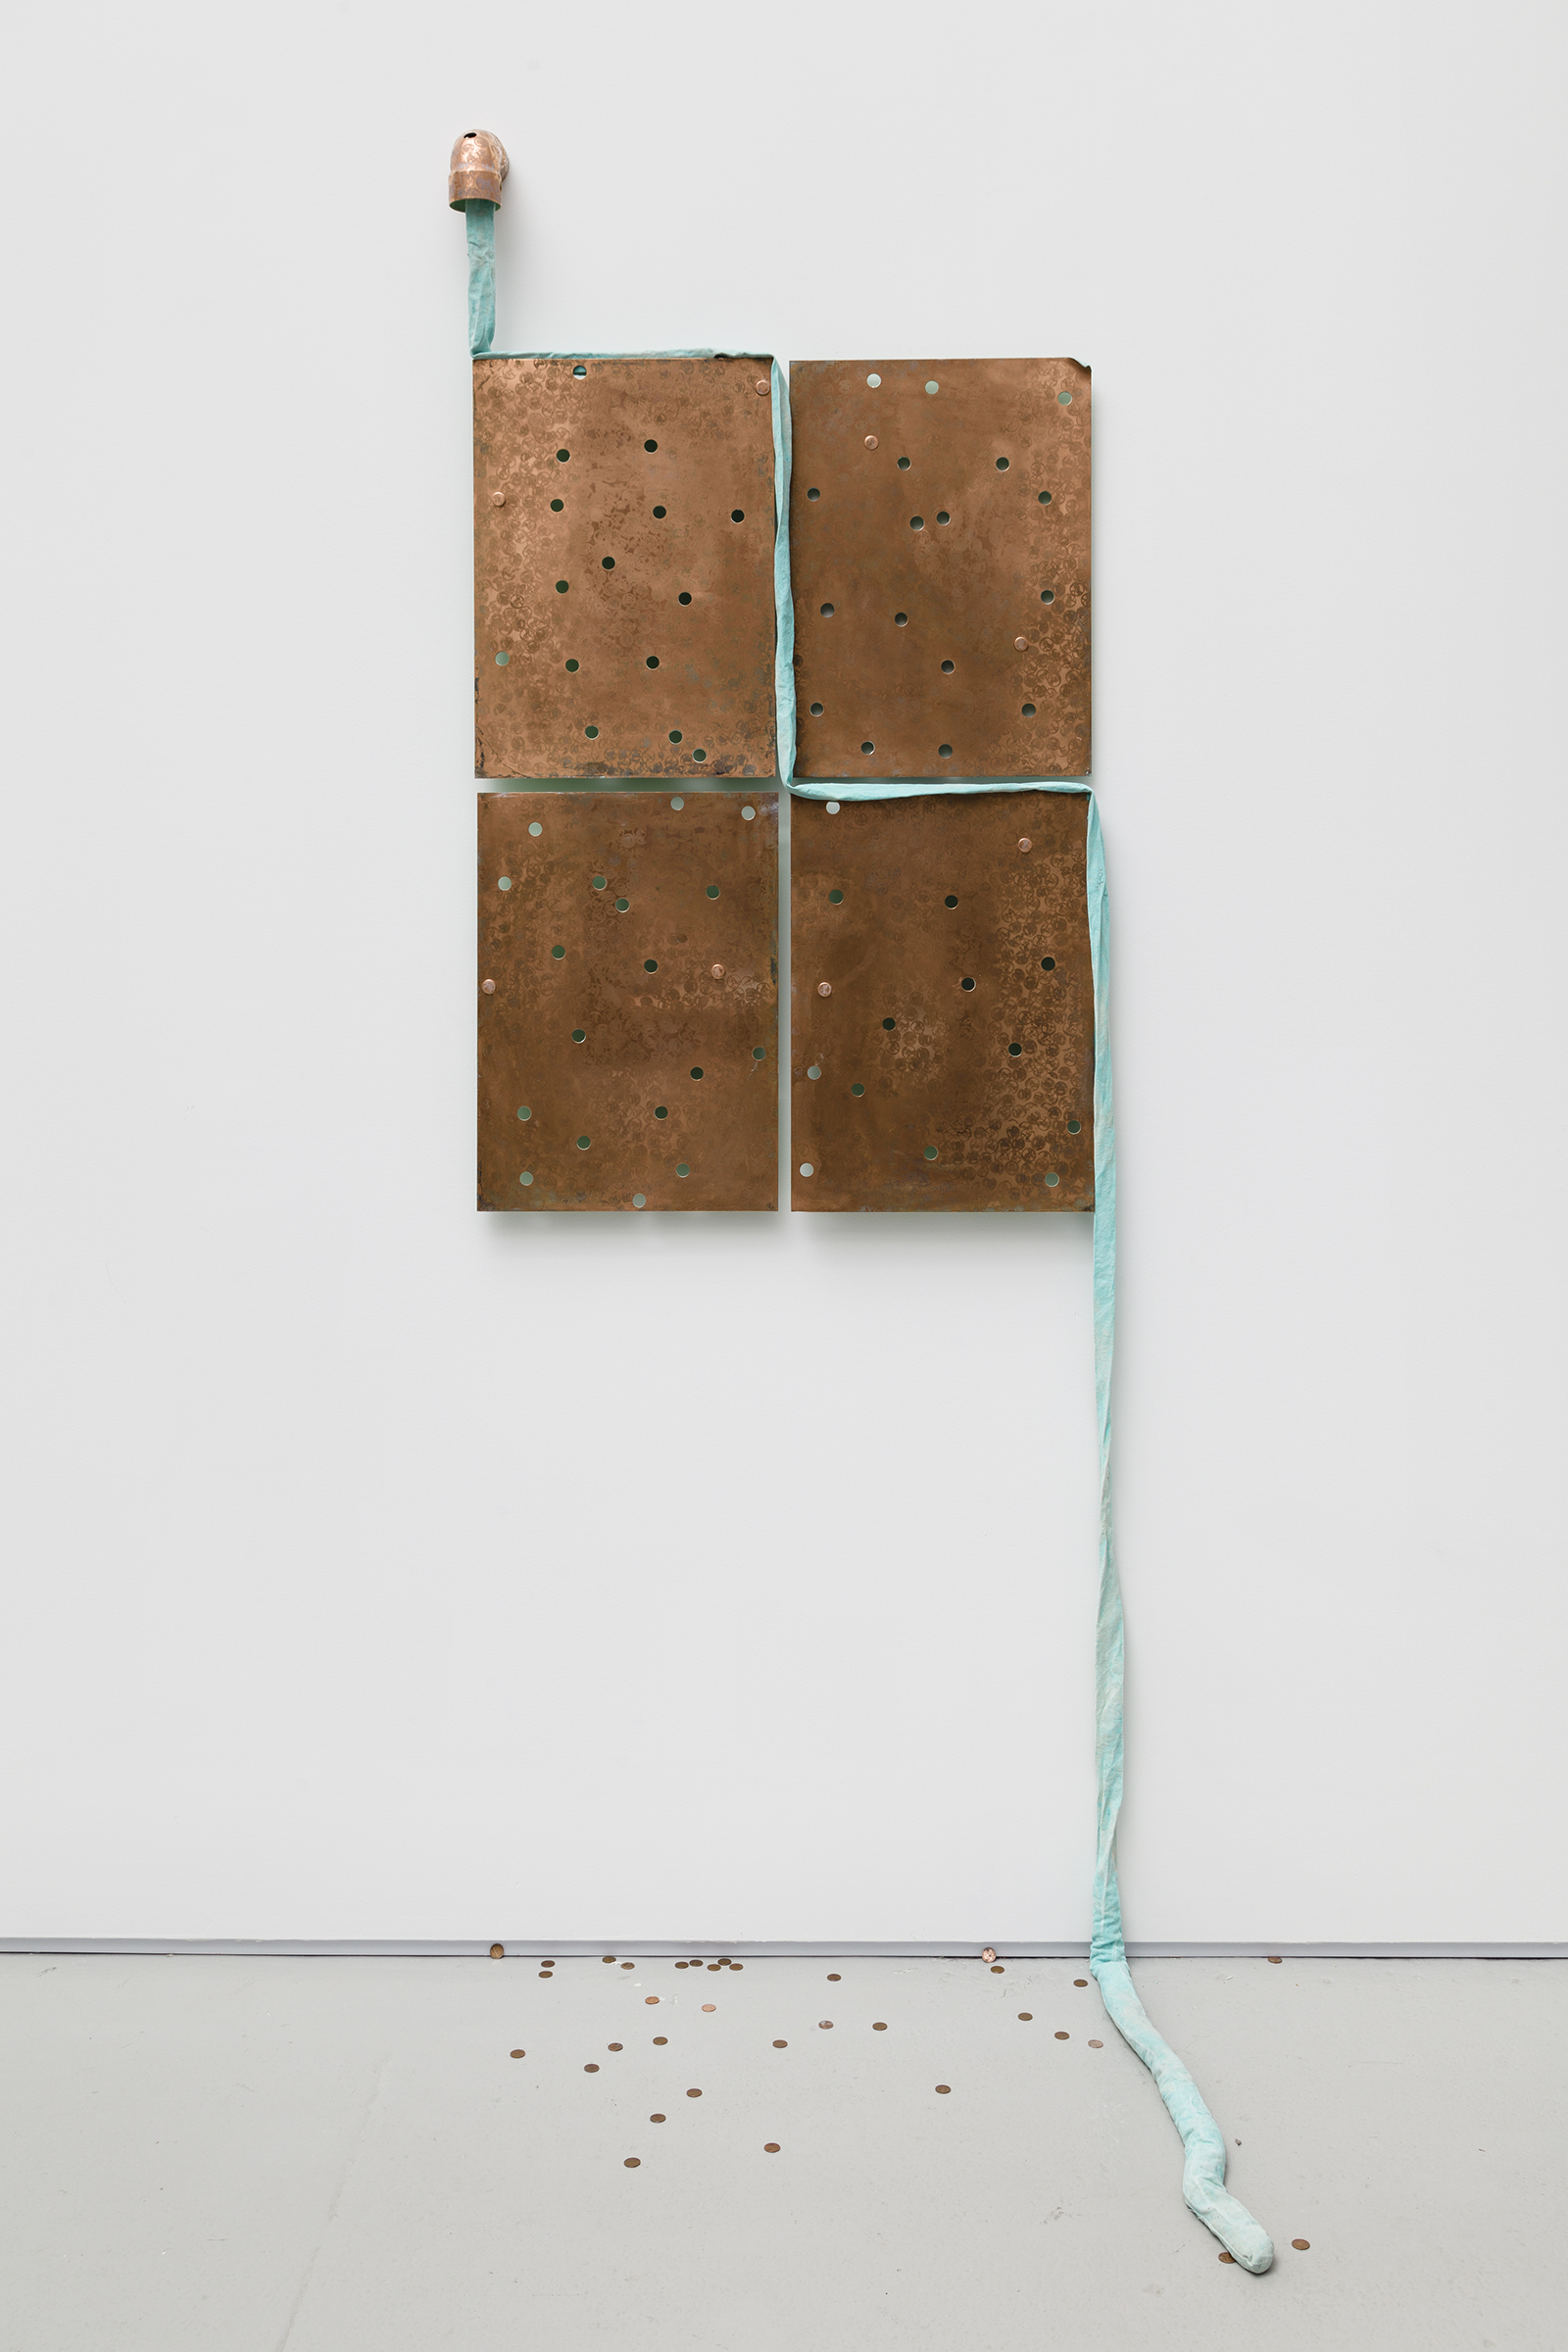 Jory Rabinovitz,  Through 2,  2015, melted pennies and un-melted pennies, Verdigris Green fabric, 97.5 x 36 x 30 in.